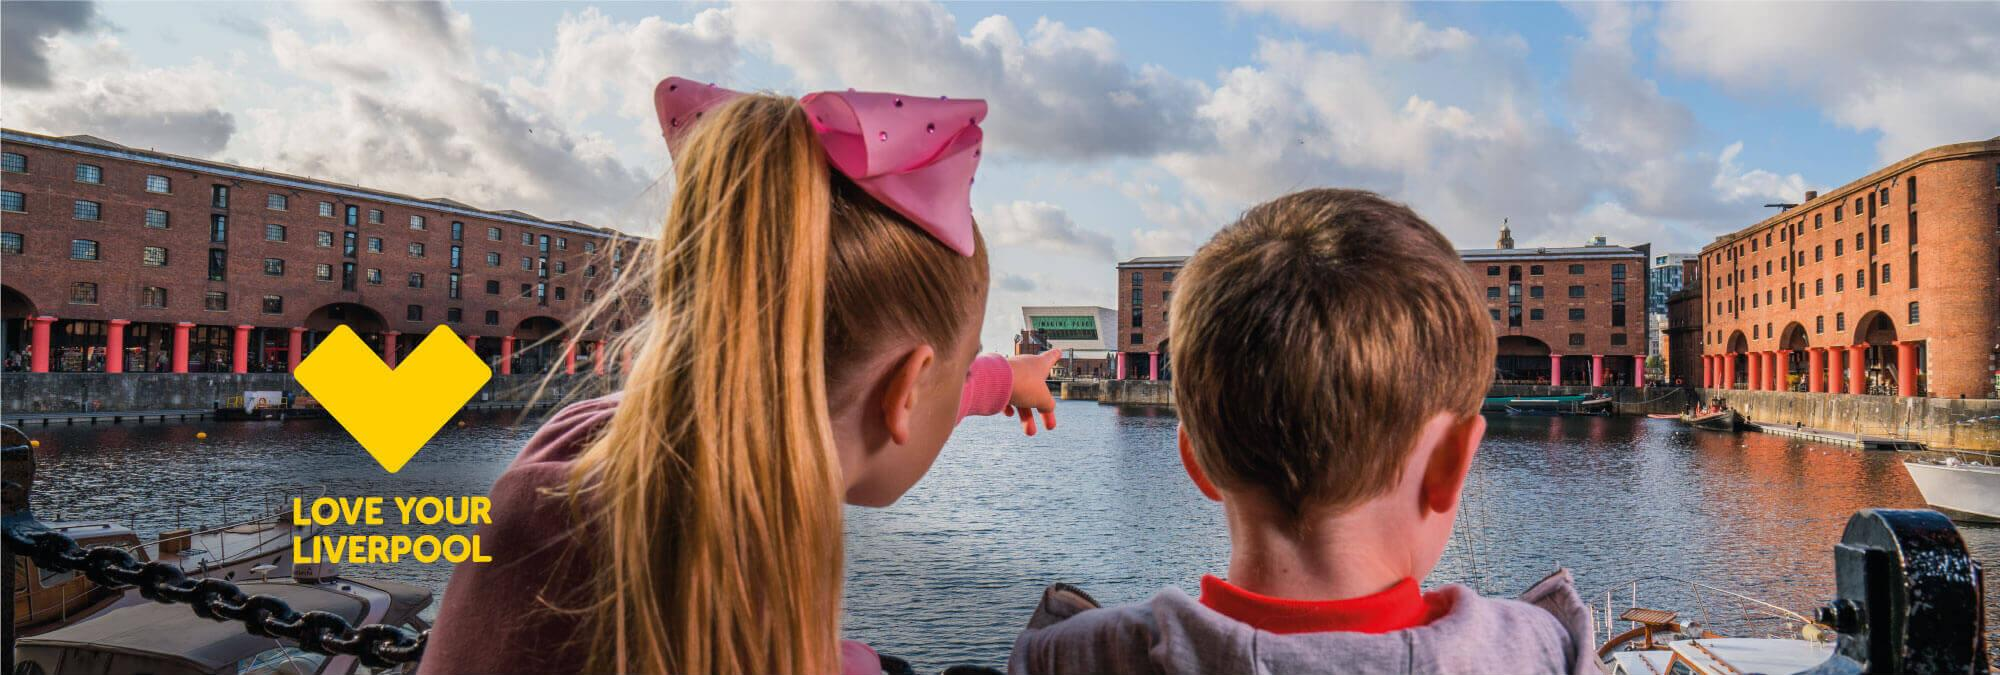 Two young children look out over the Royal ALbert Dock PAvillion